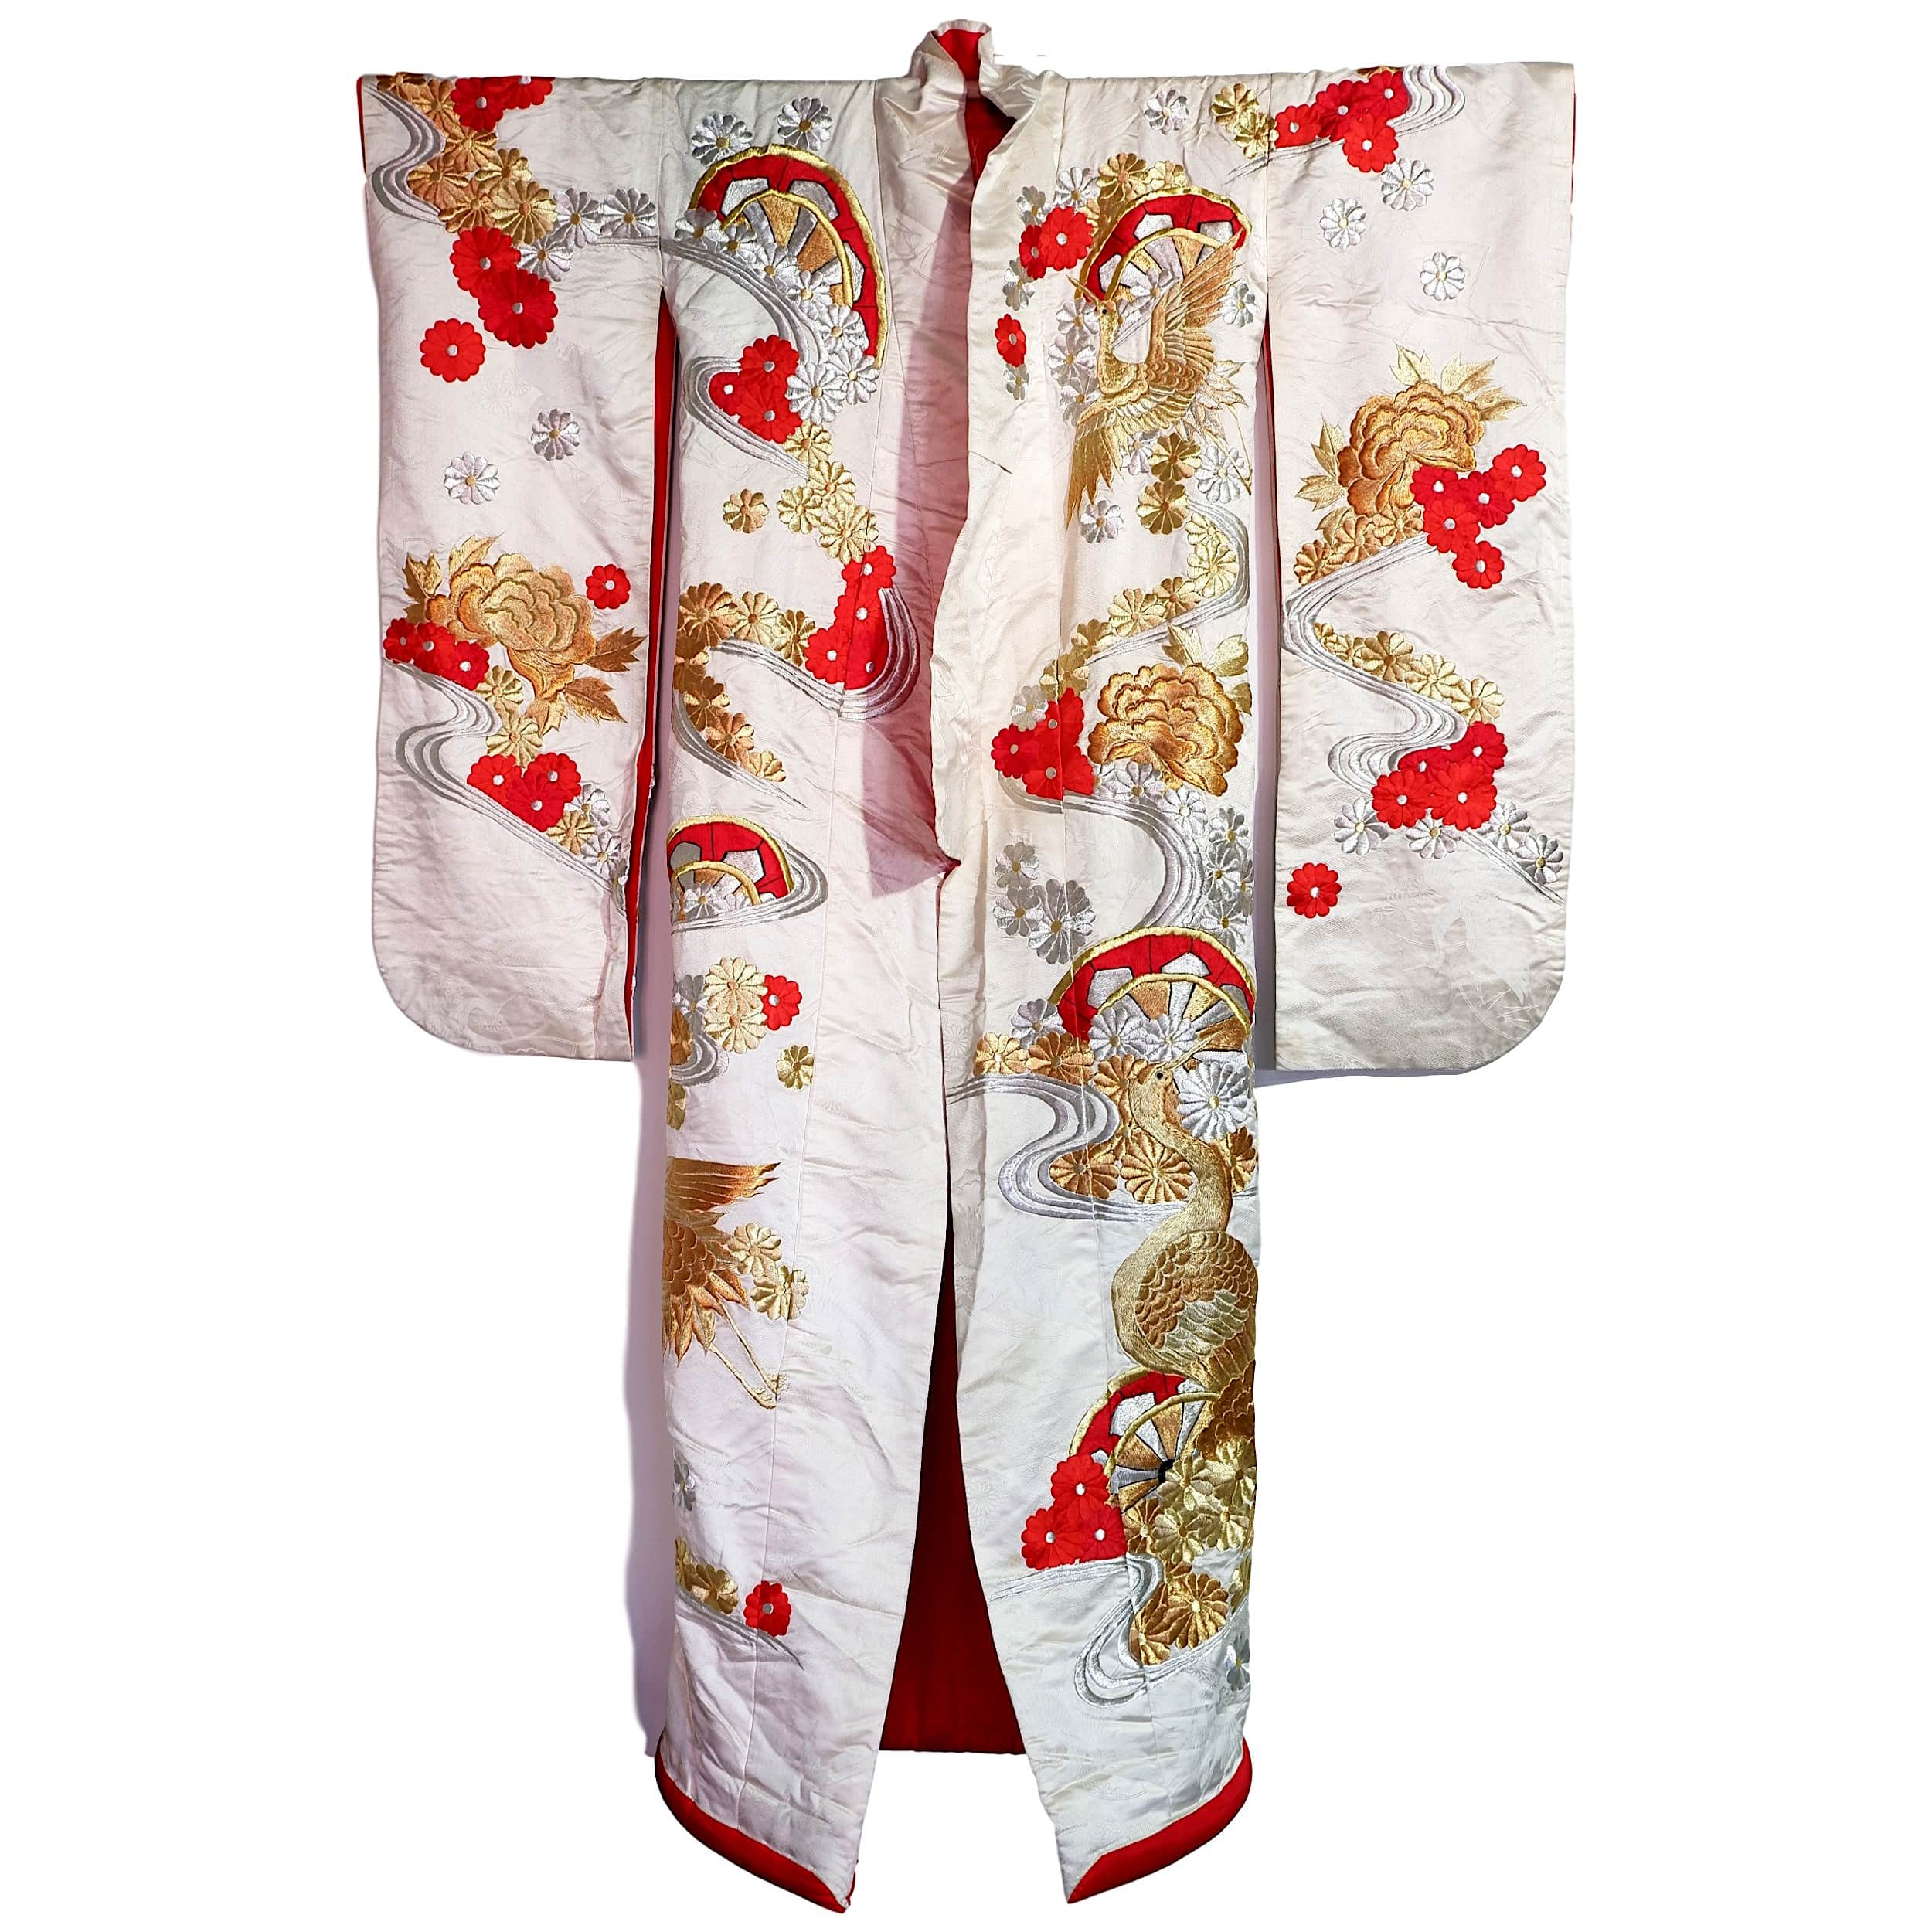 'Fine Vintage Richly Embroidered Japanese Silk Kimono'